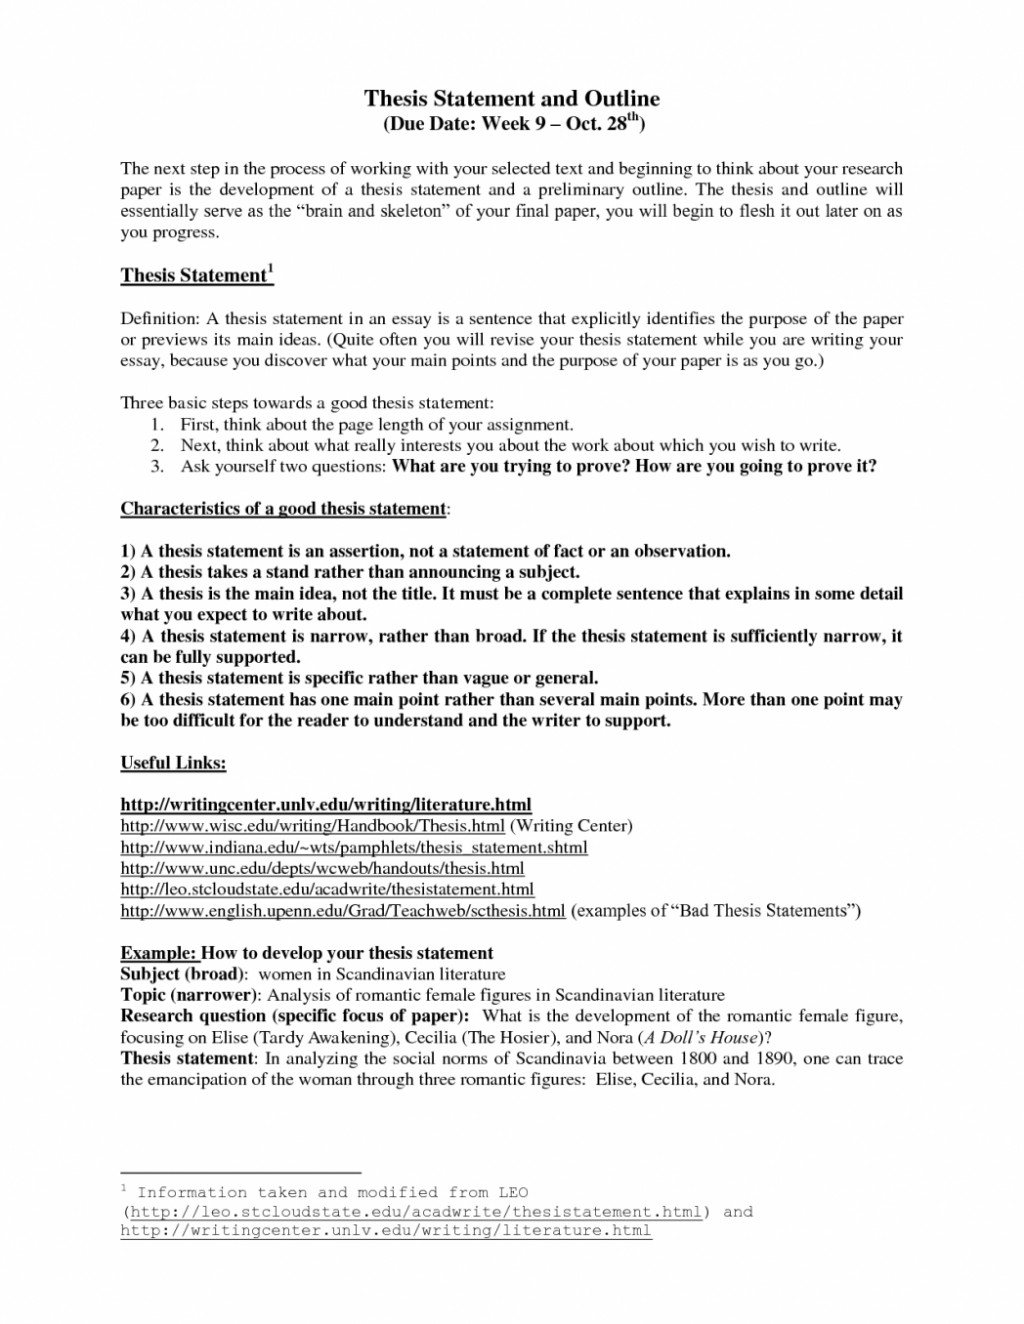 015 Thesis Statement Essay Sample Narrative Cover Letter Example Essays And Outline Template Wx8 Writing Powerpoint Ppt Step By 4th Grade About Being Judged Quizlet Someone Else Stirring Descriptive Examples Definition Structure Large